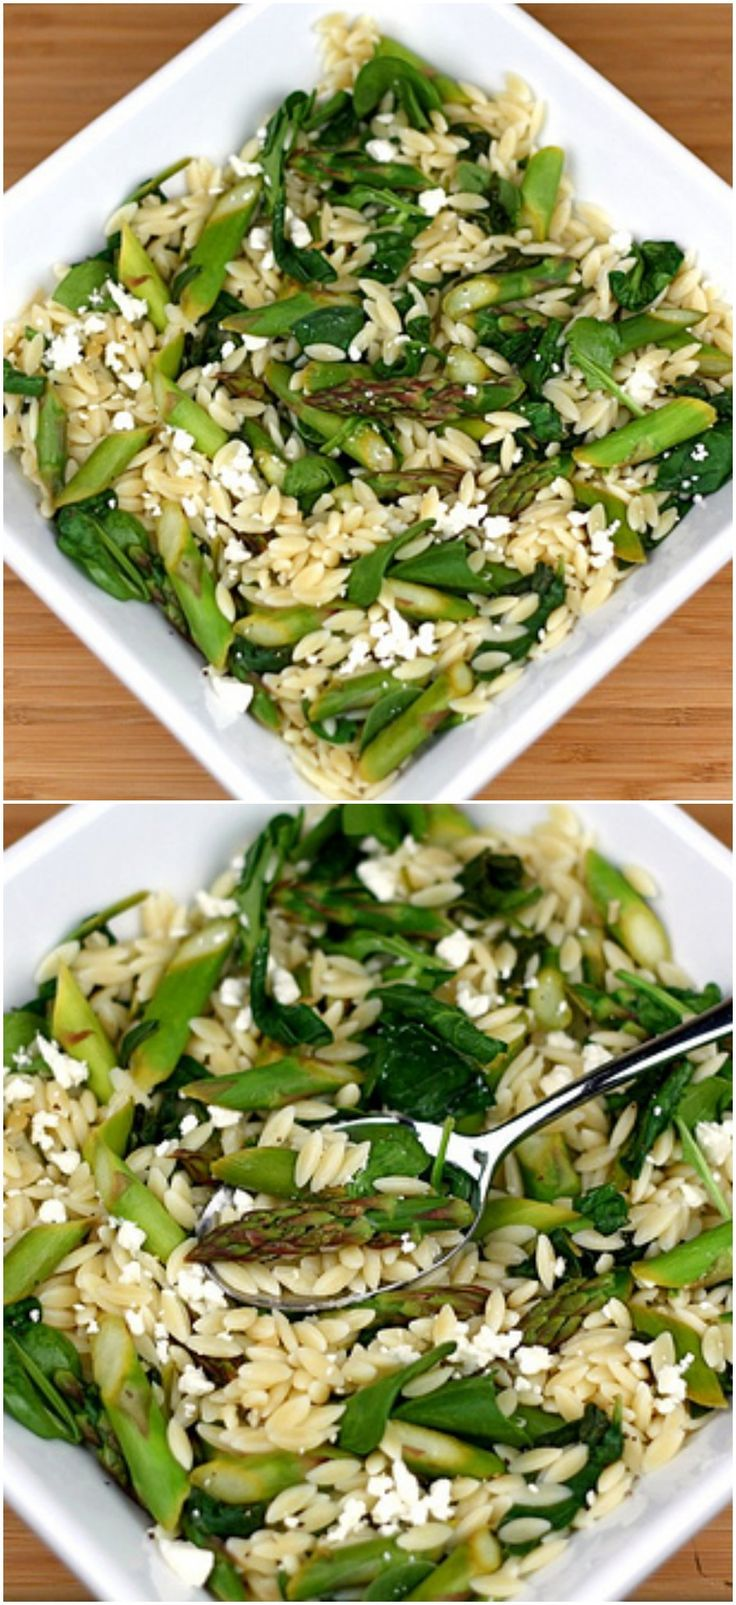 Lemon Orzo Salad with Asparagus, Spinach, and Feta on twopeasandtheirpod.com. Love this fresh and healthy salad! #salad #vegetarian